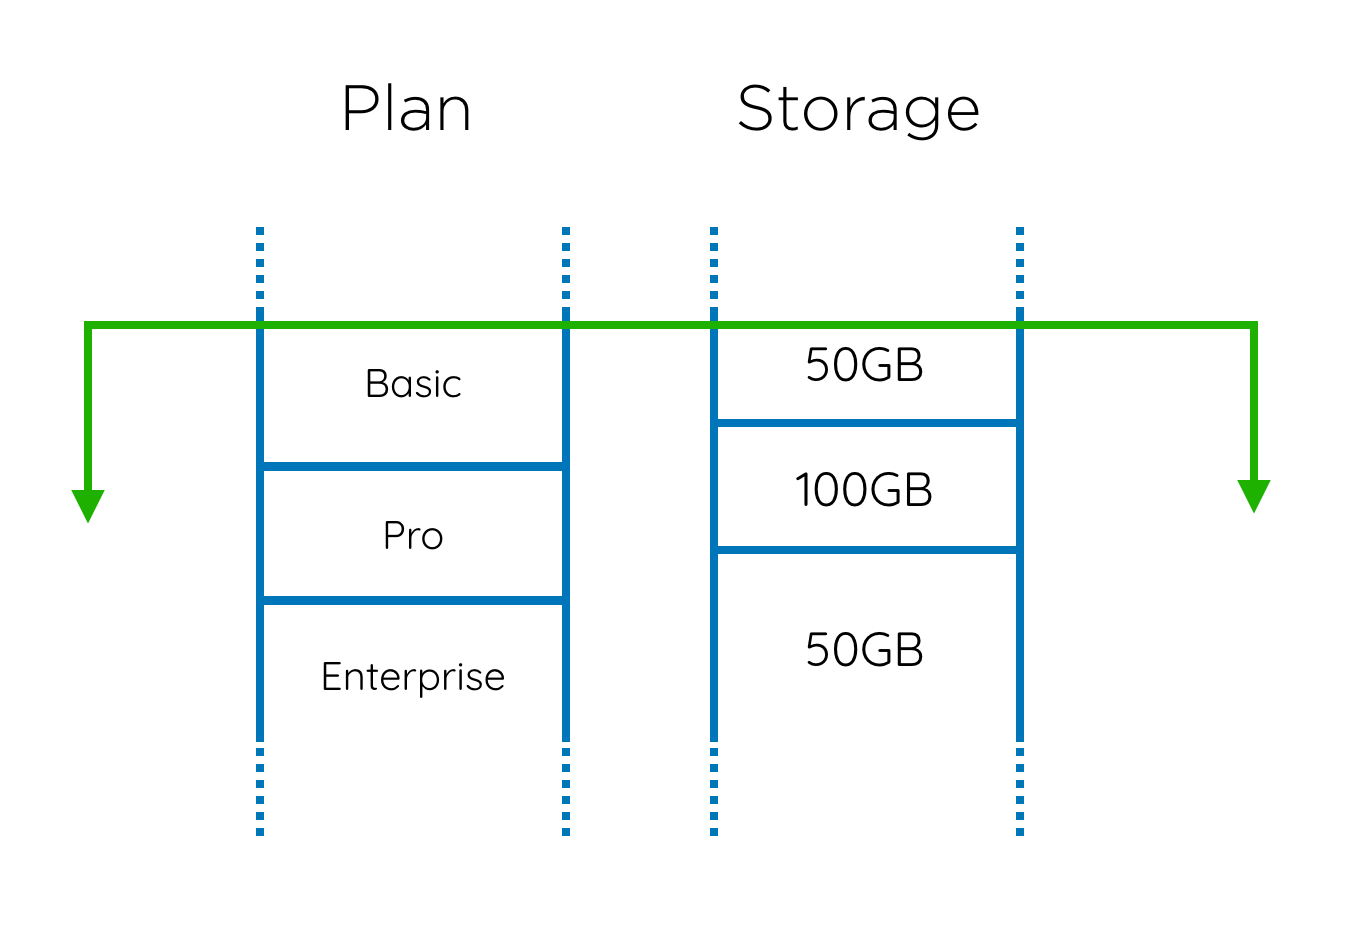 Overlapping plans and storage volumes